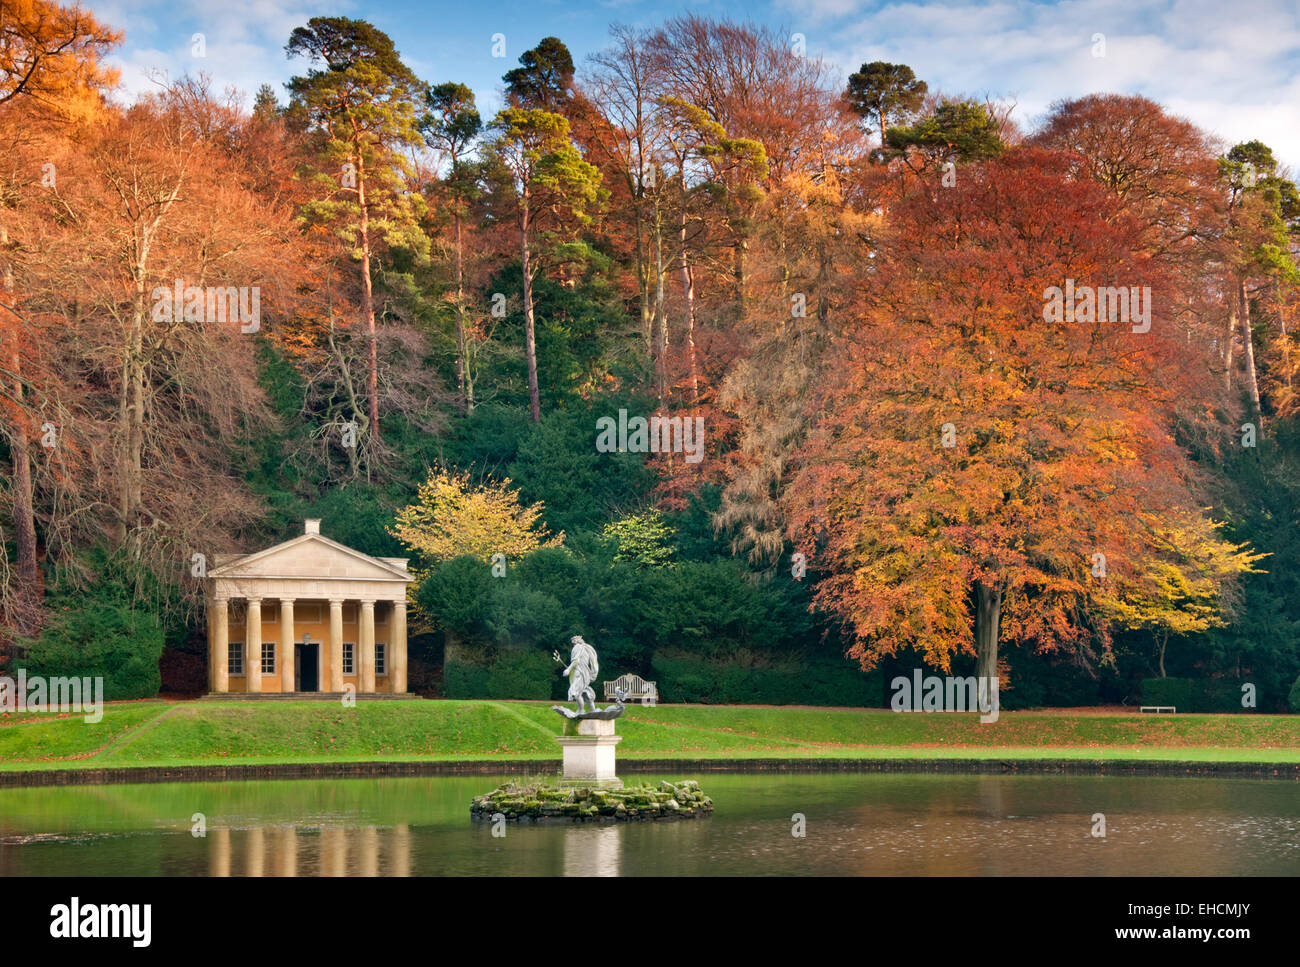 Temple of Piety in Autumn, Studley Royal, Fountains Abbey, Near Ripon, North Yorkshire - Stock Image